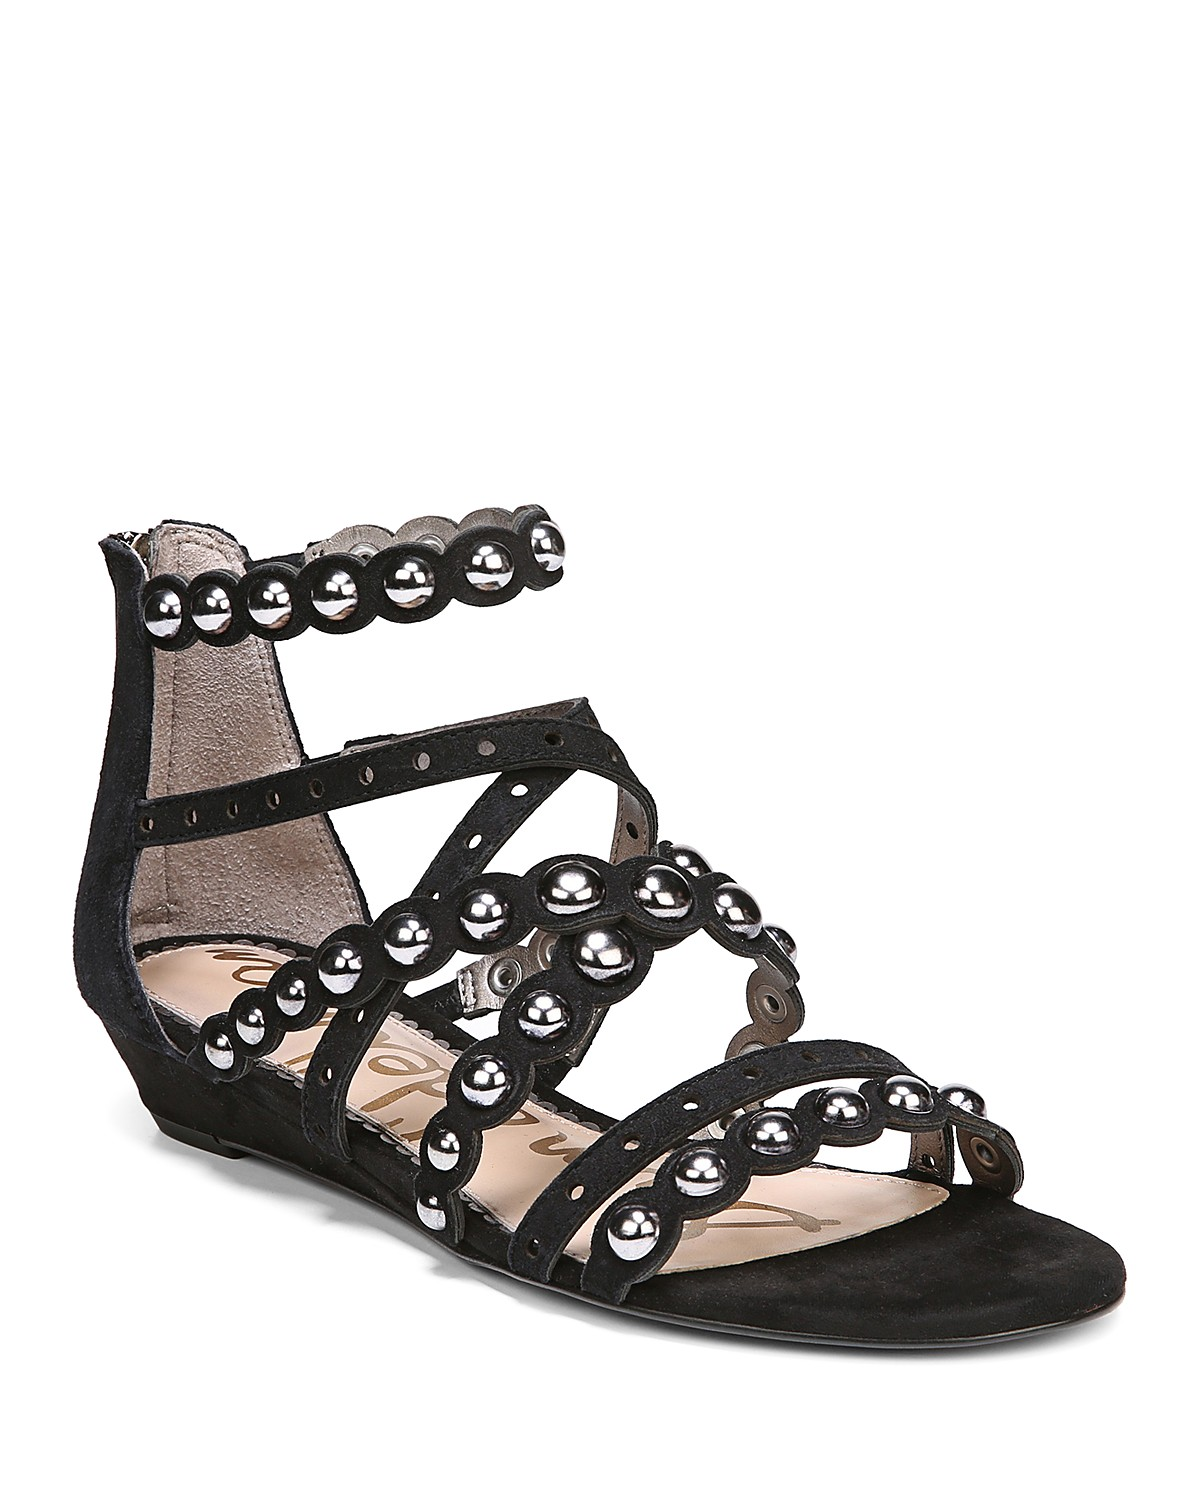 Sam Edelman Women's Dustee Studded Suede Gladiator Sandals iagQ57nkWS